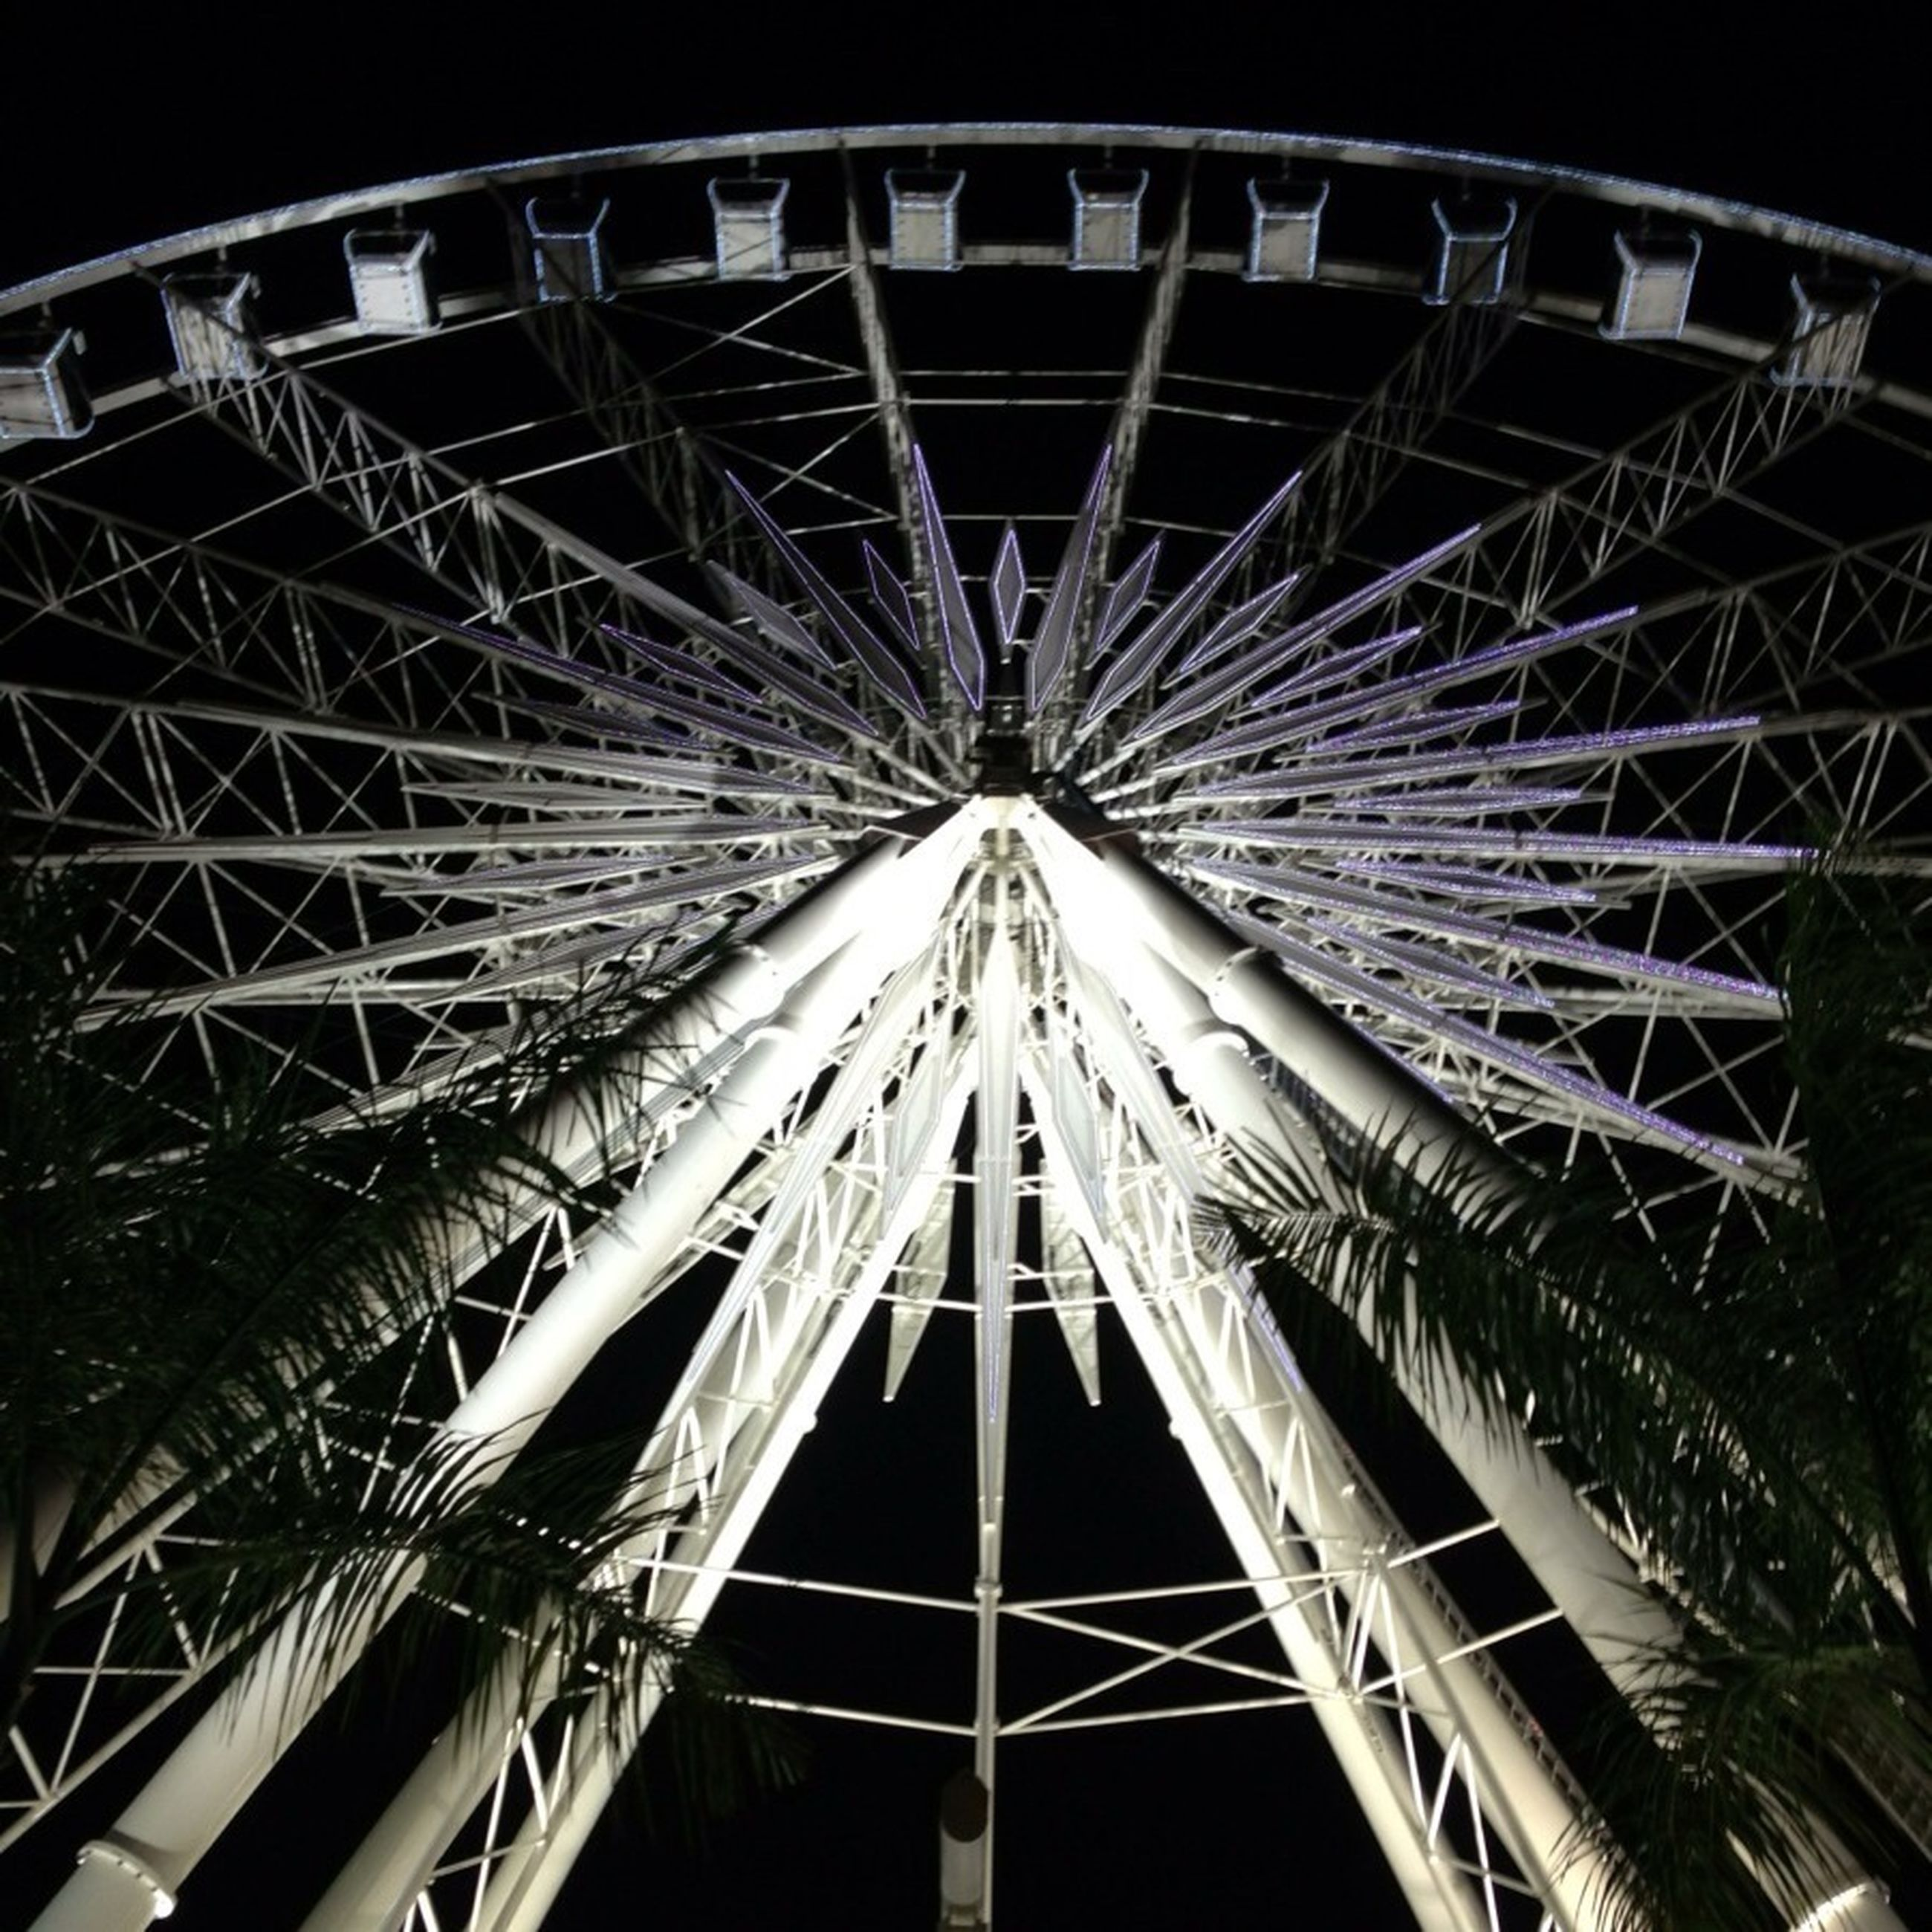 low angle view, built structure, architecture, arts culture and entertainment, night, ferris wheel, amusement park, metal, amusement park ride, sky, clear sky, illuminated, travel destinations, famous place, metallic, architectural feature, outdoors, no people, international landmark, engineering